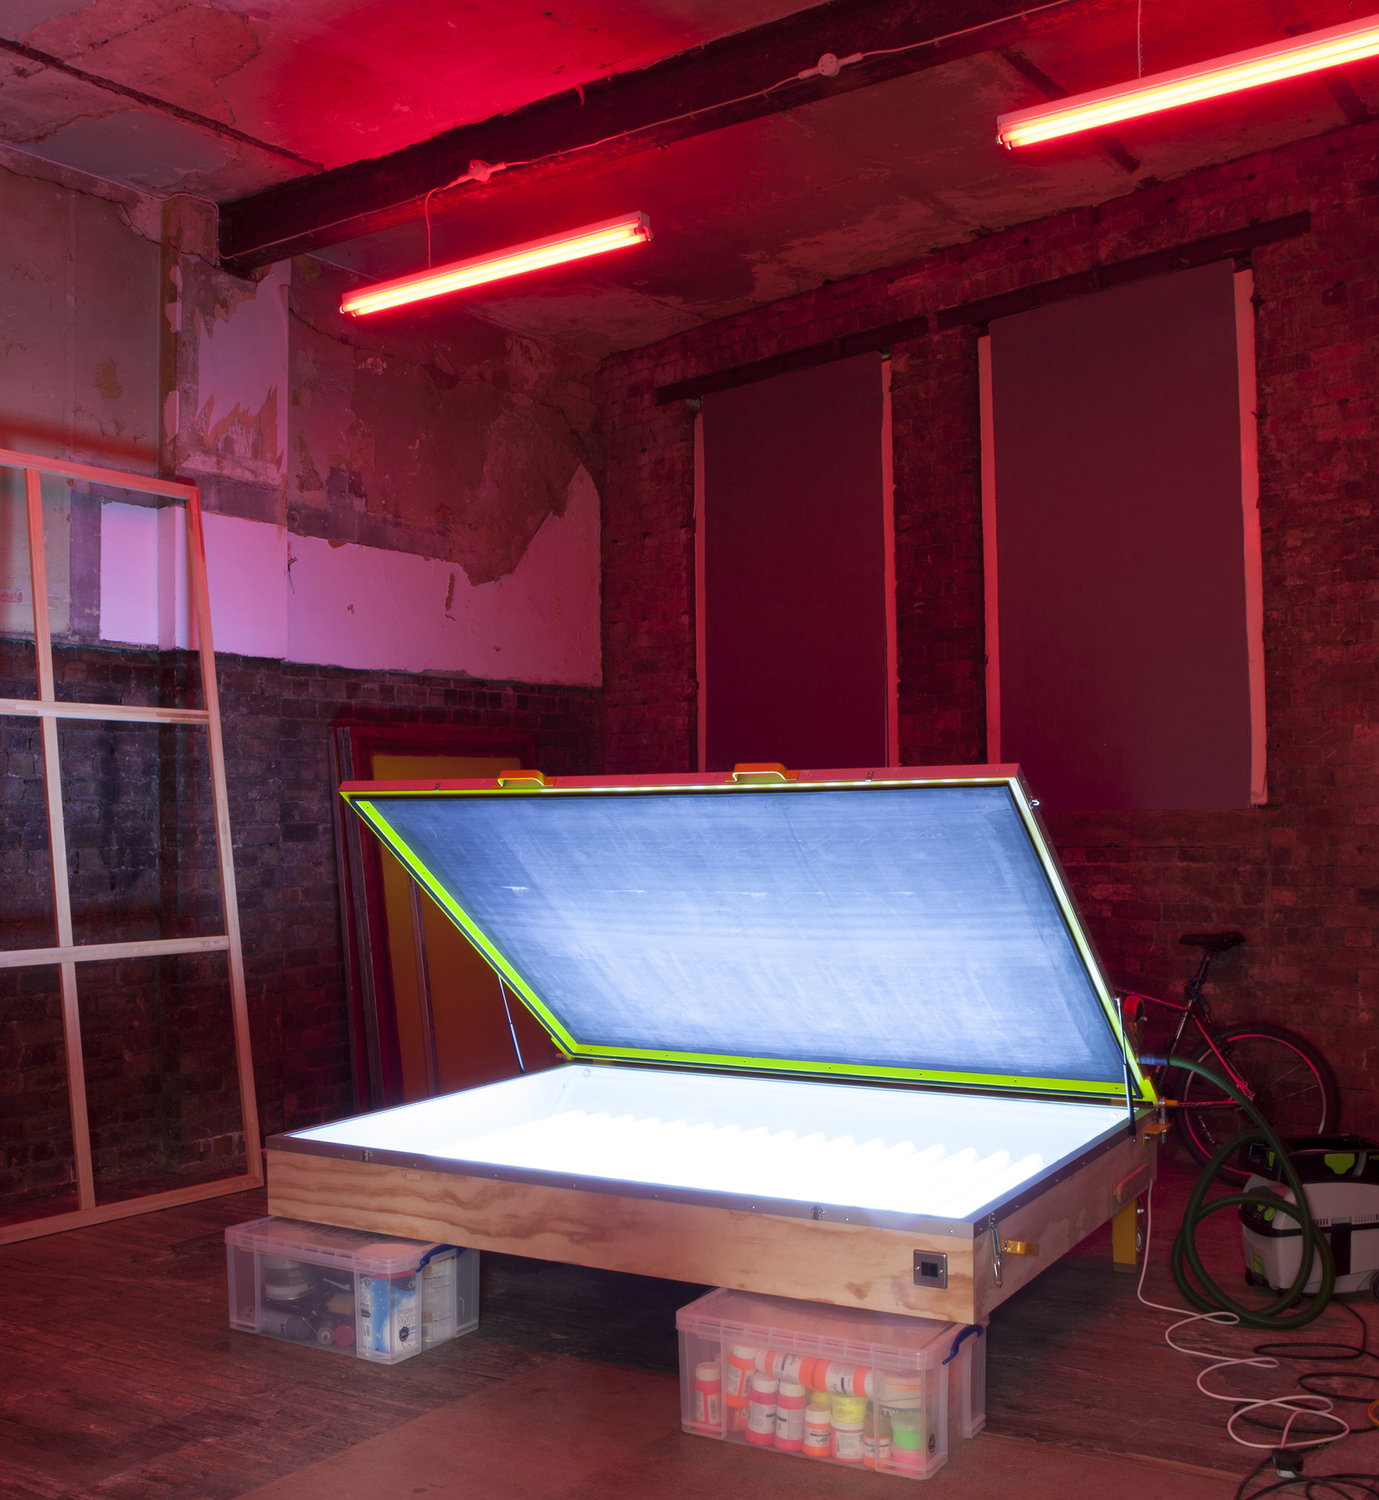 Installation view 'This Way Out', The Modern Institute, Aird's Lane, Glasgow, 2017